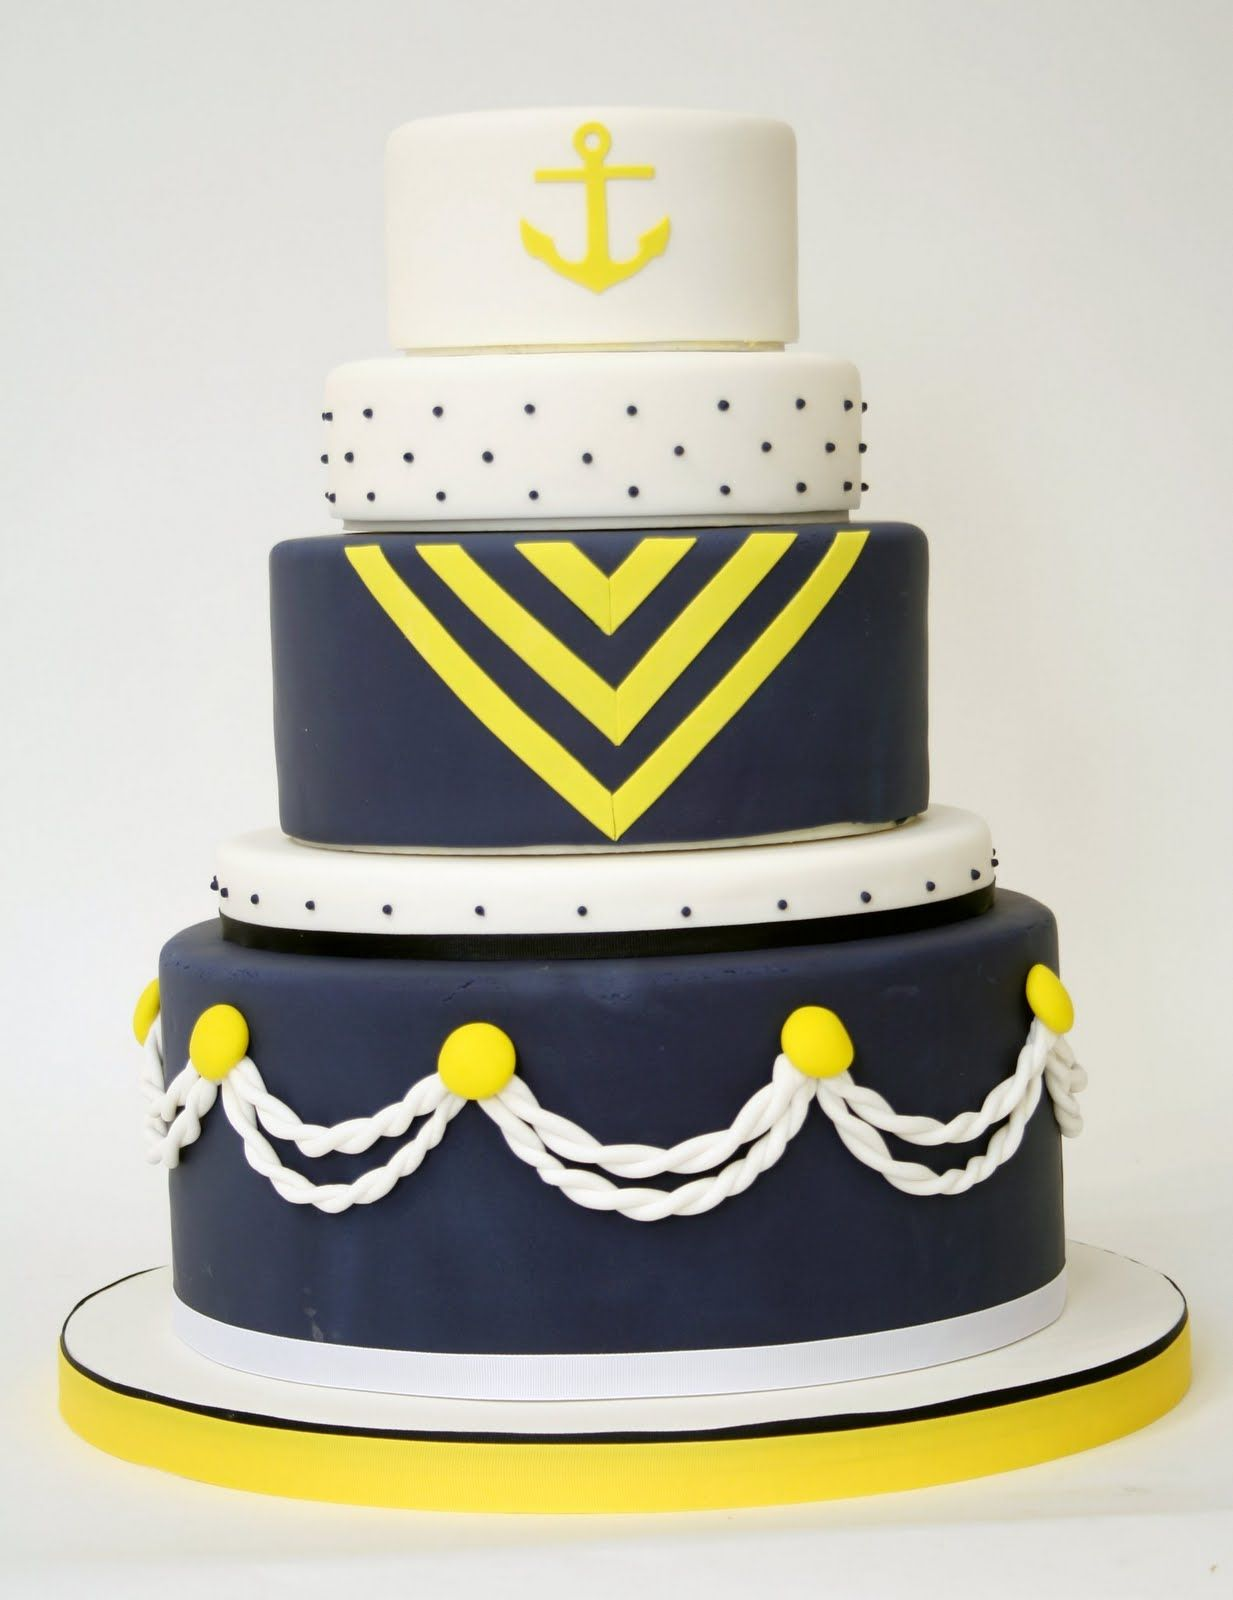 Sailor Def Must Do Could Make It More Girly For The Wives When We